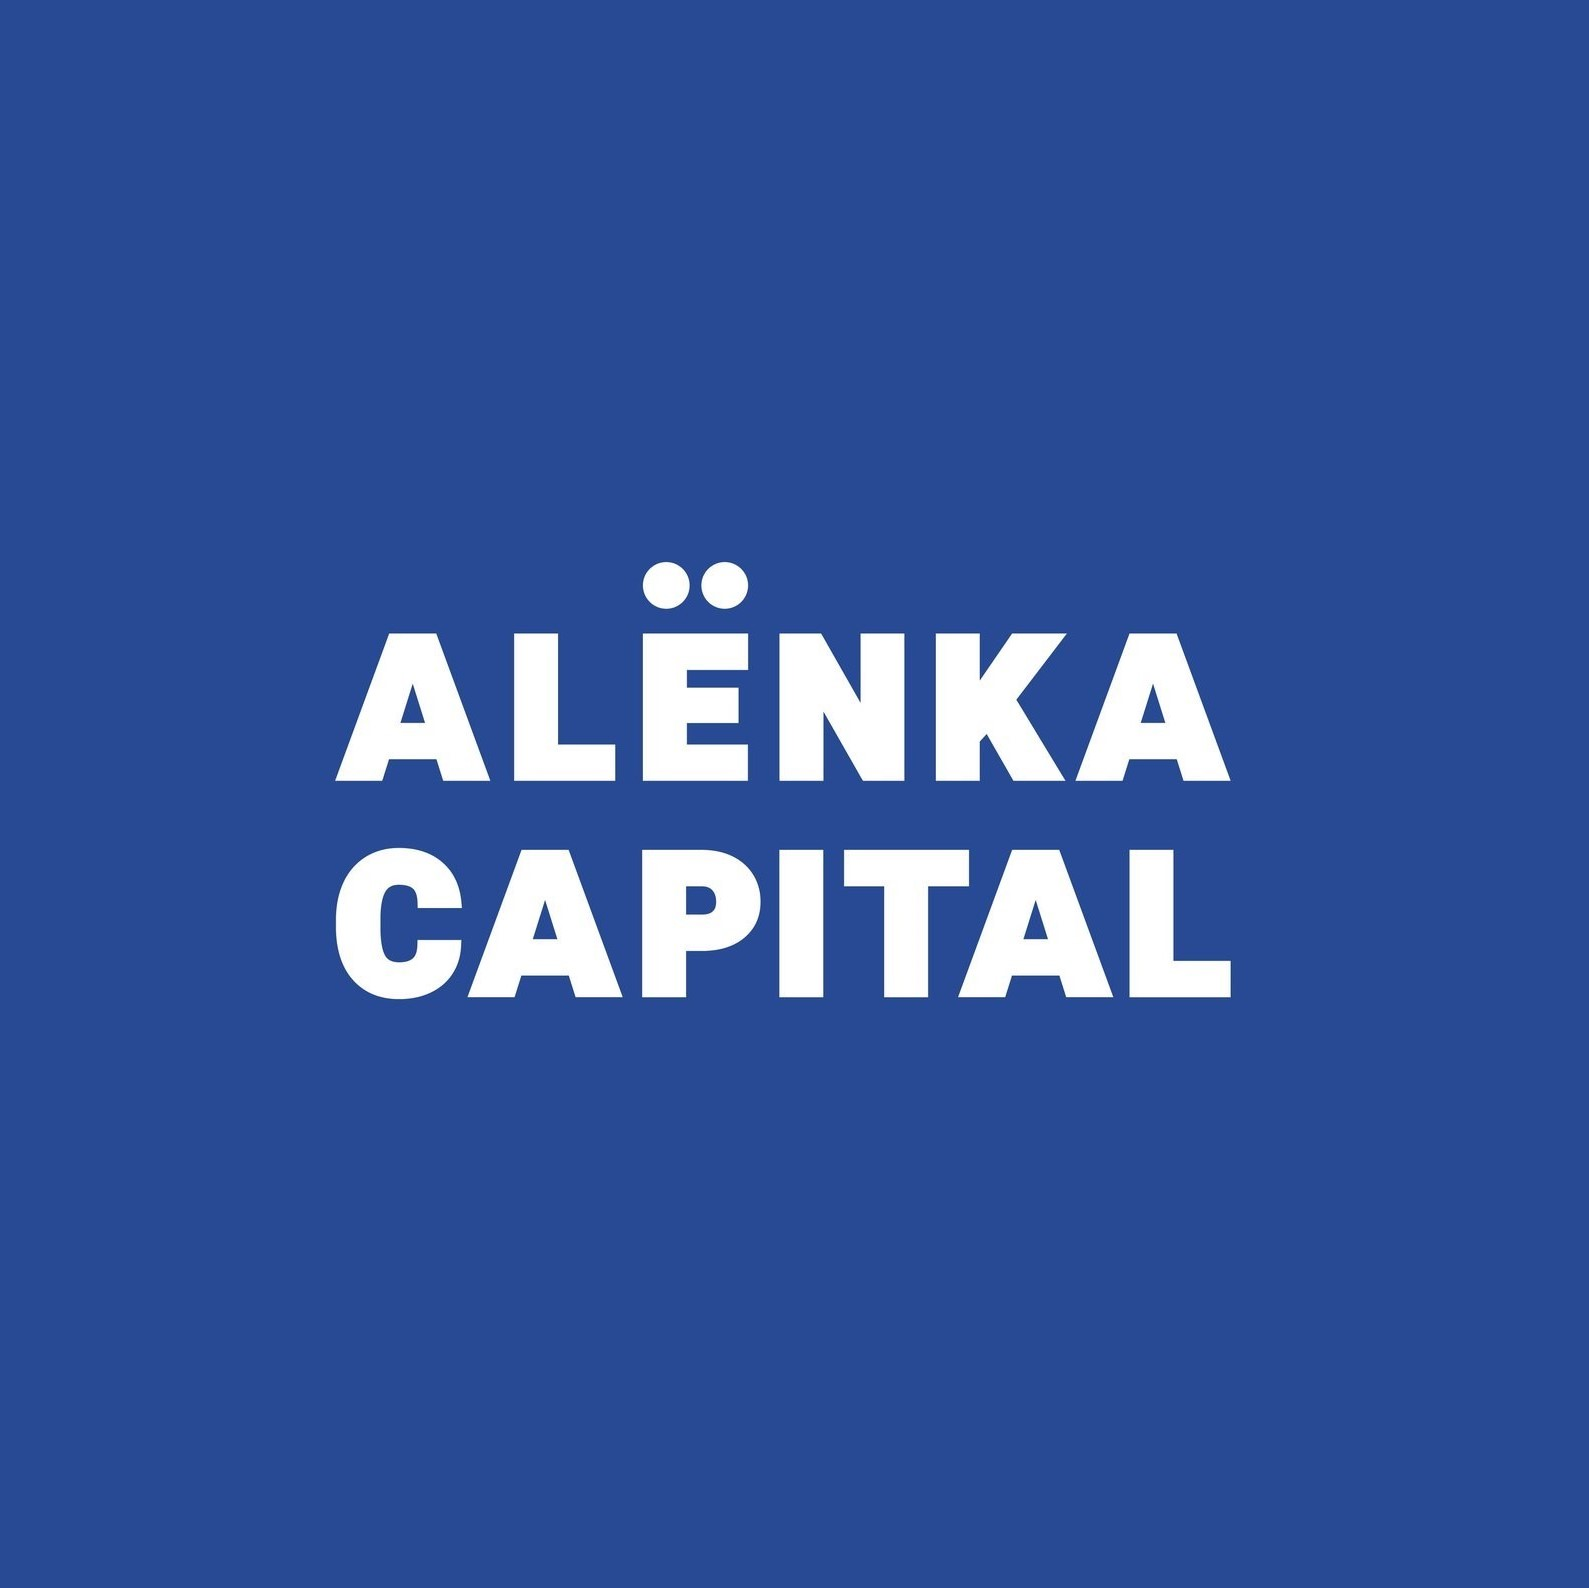 Вебинары Элвиса Марламова и Alenka Capital